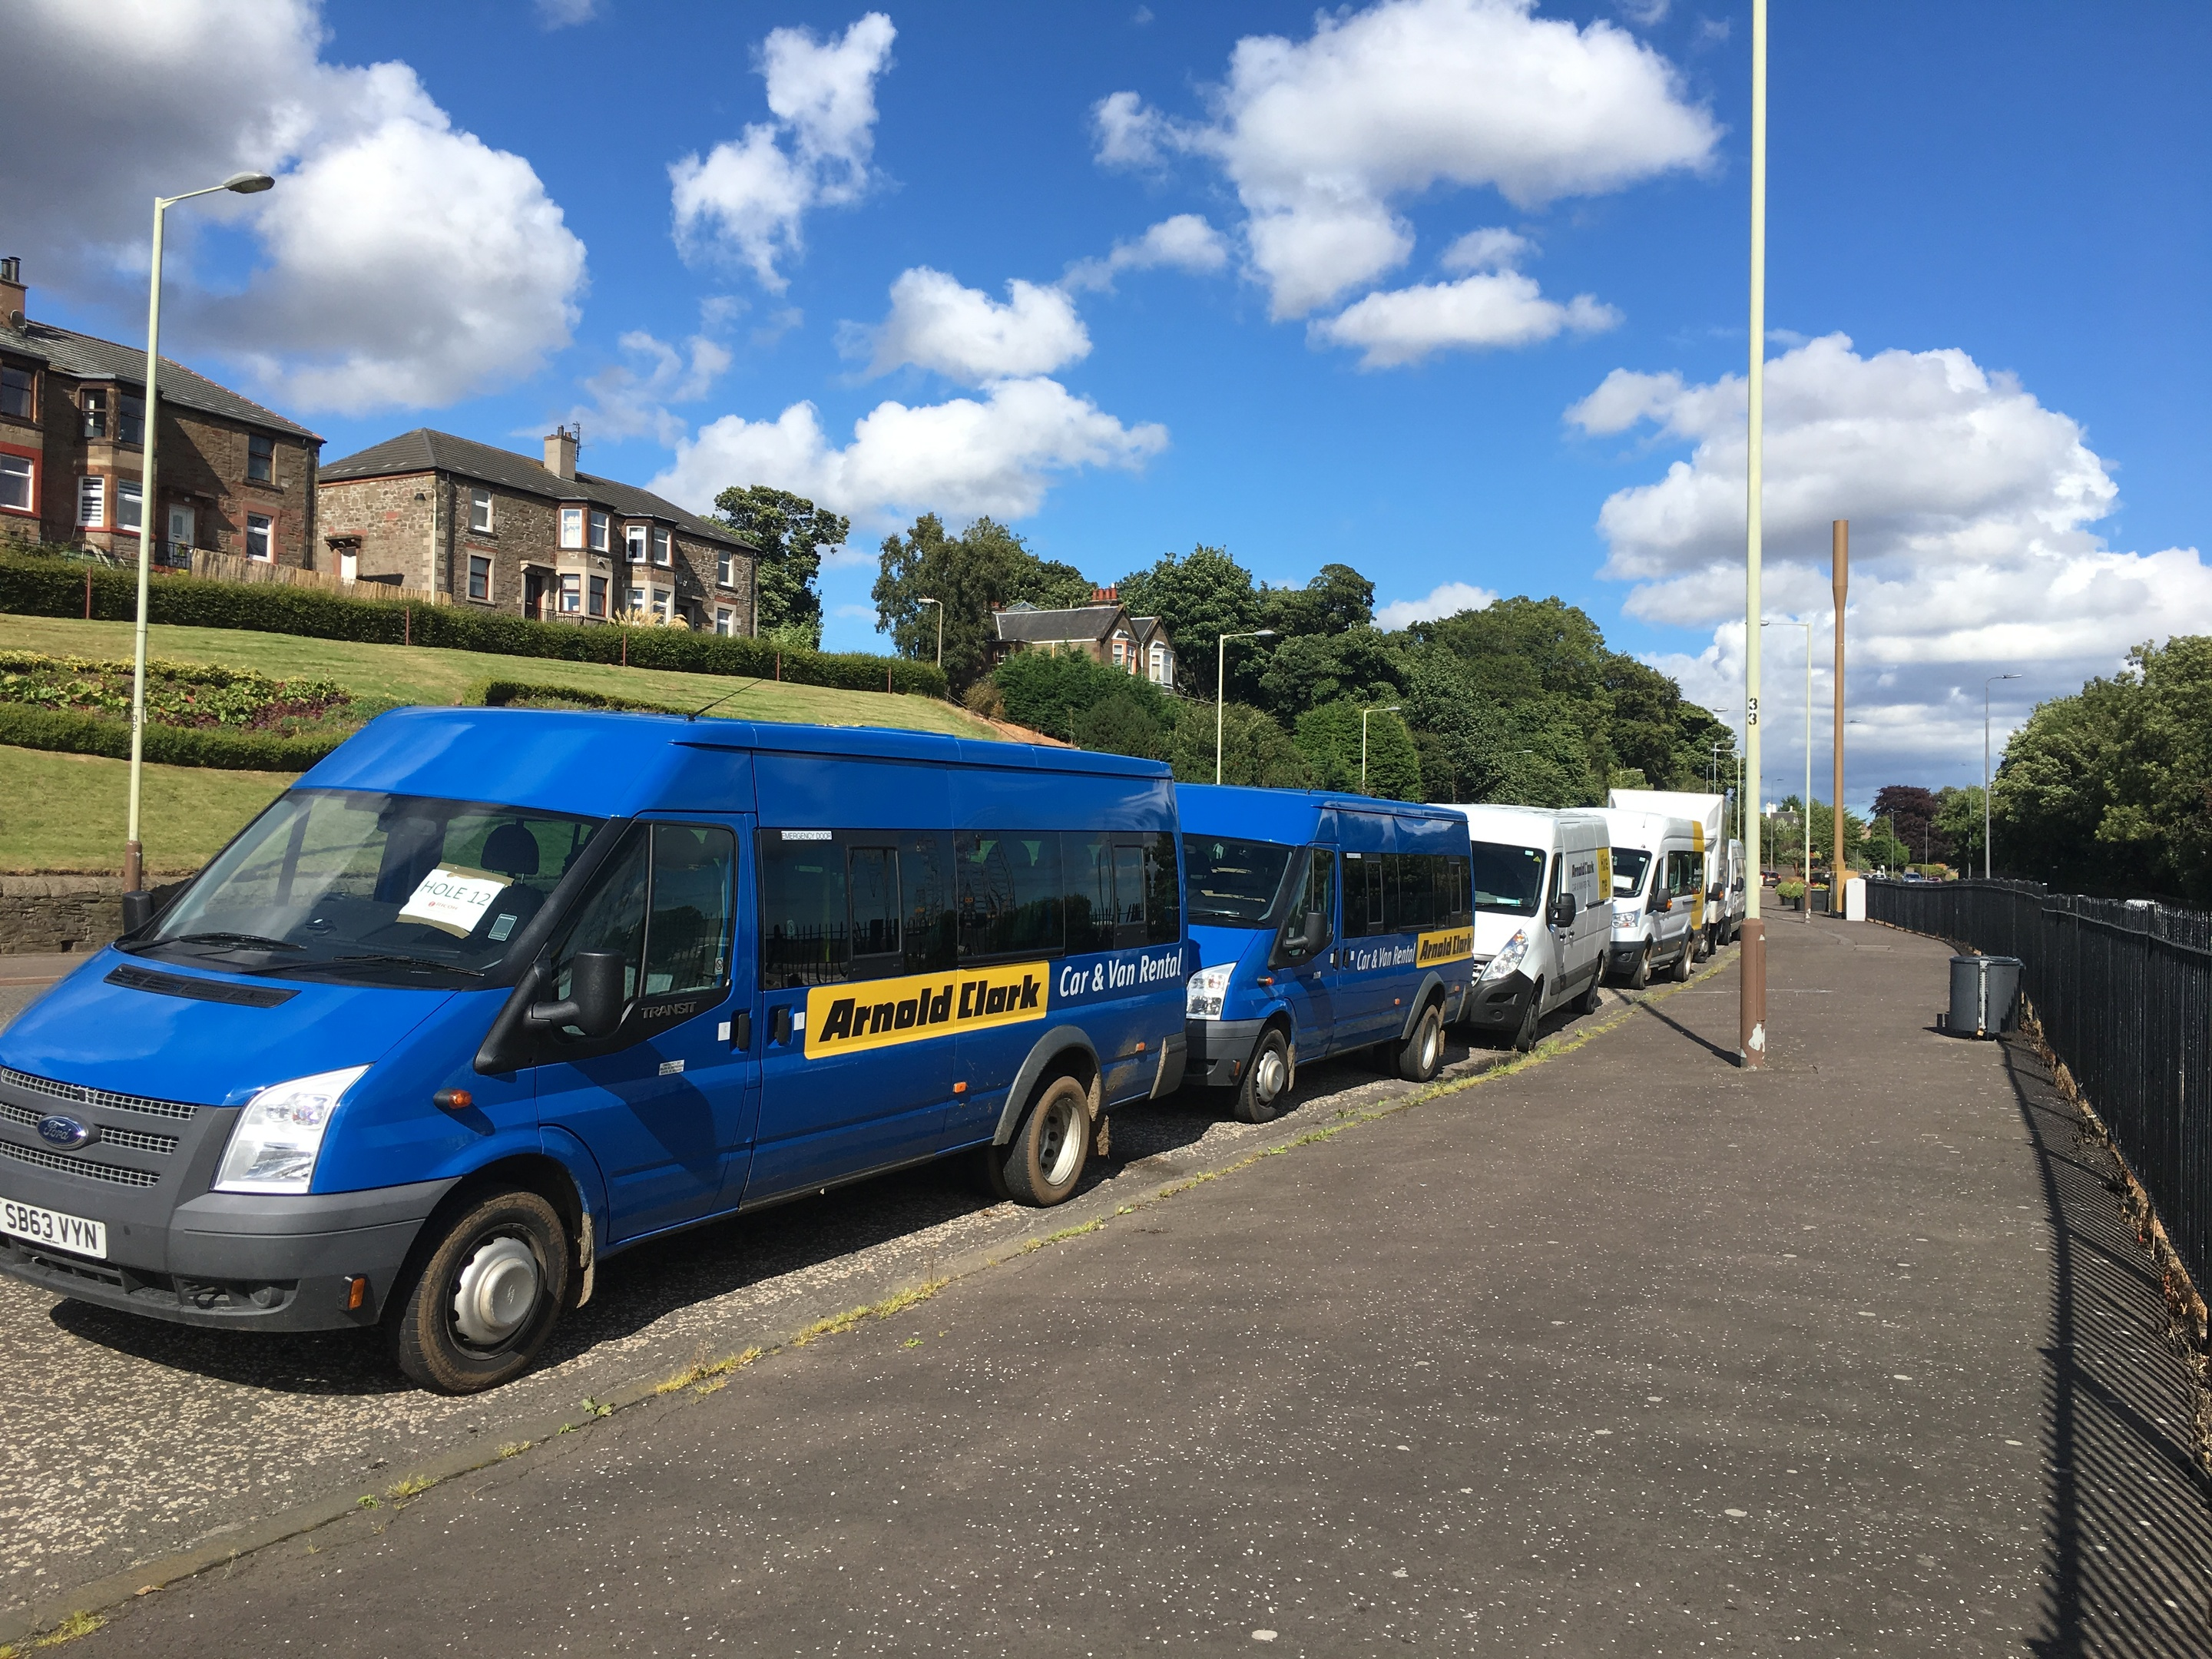 The vans parked on Broughty Ferry Road